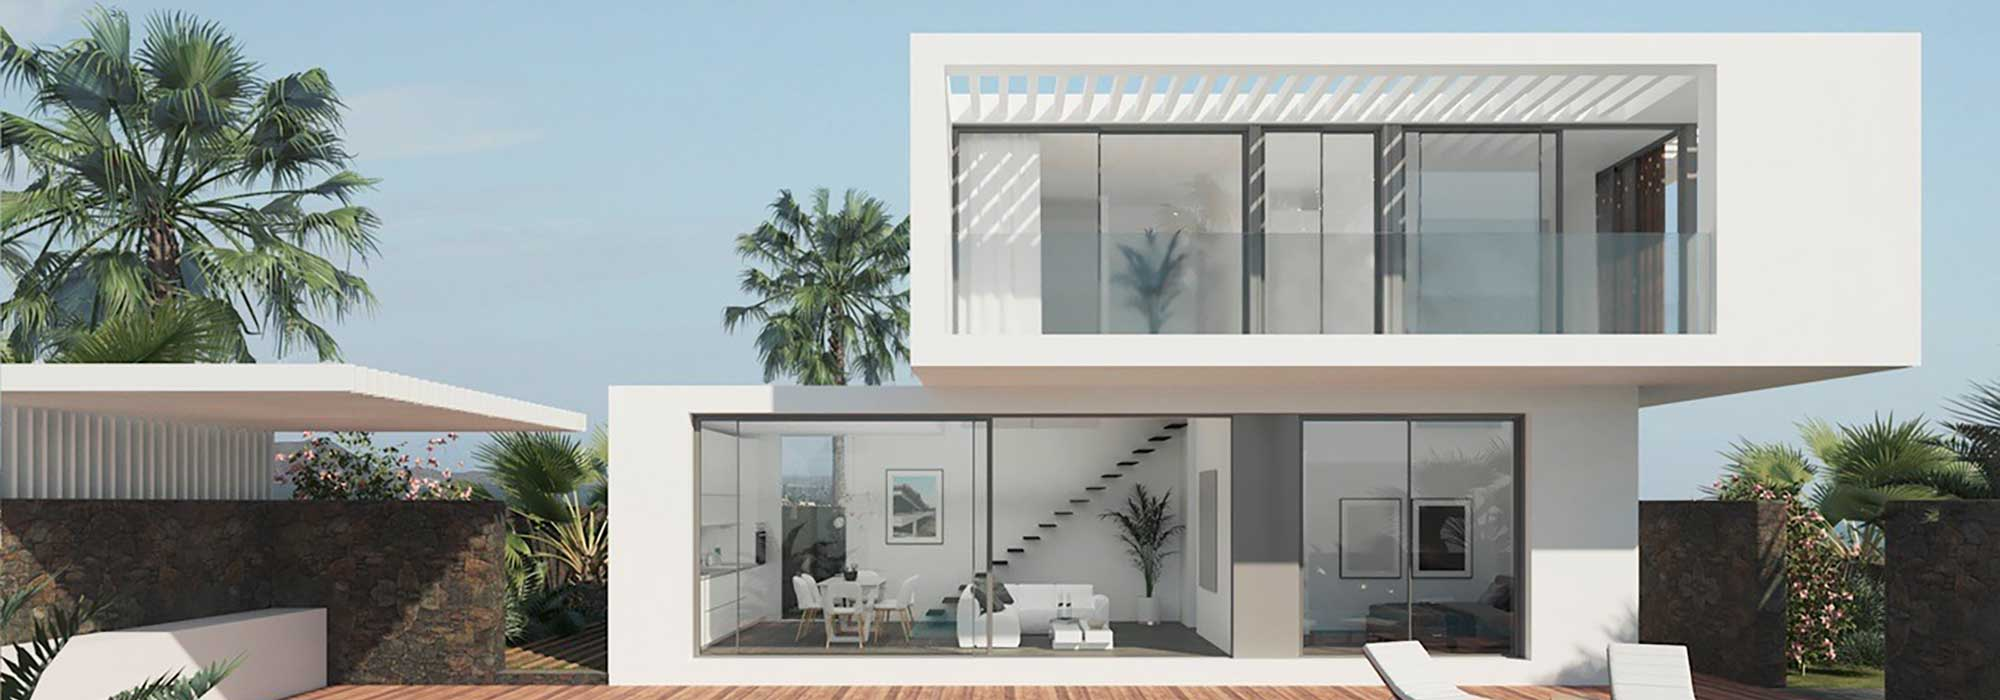 New project Villas